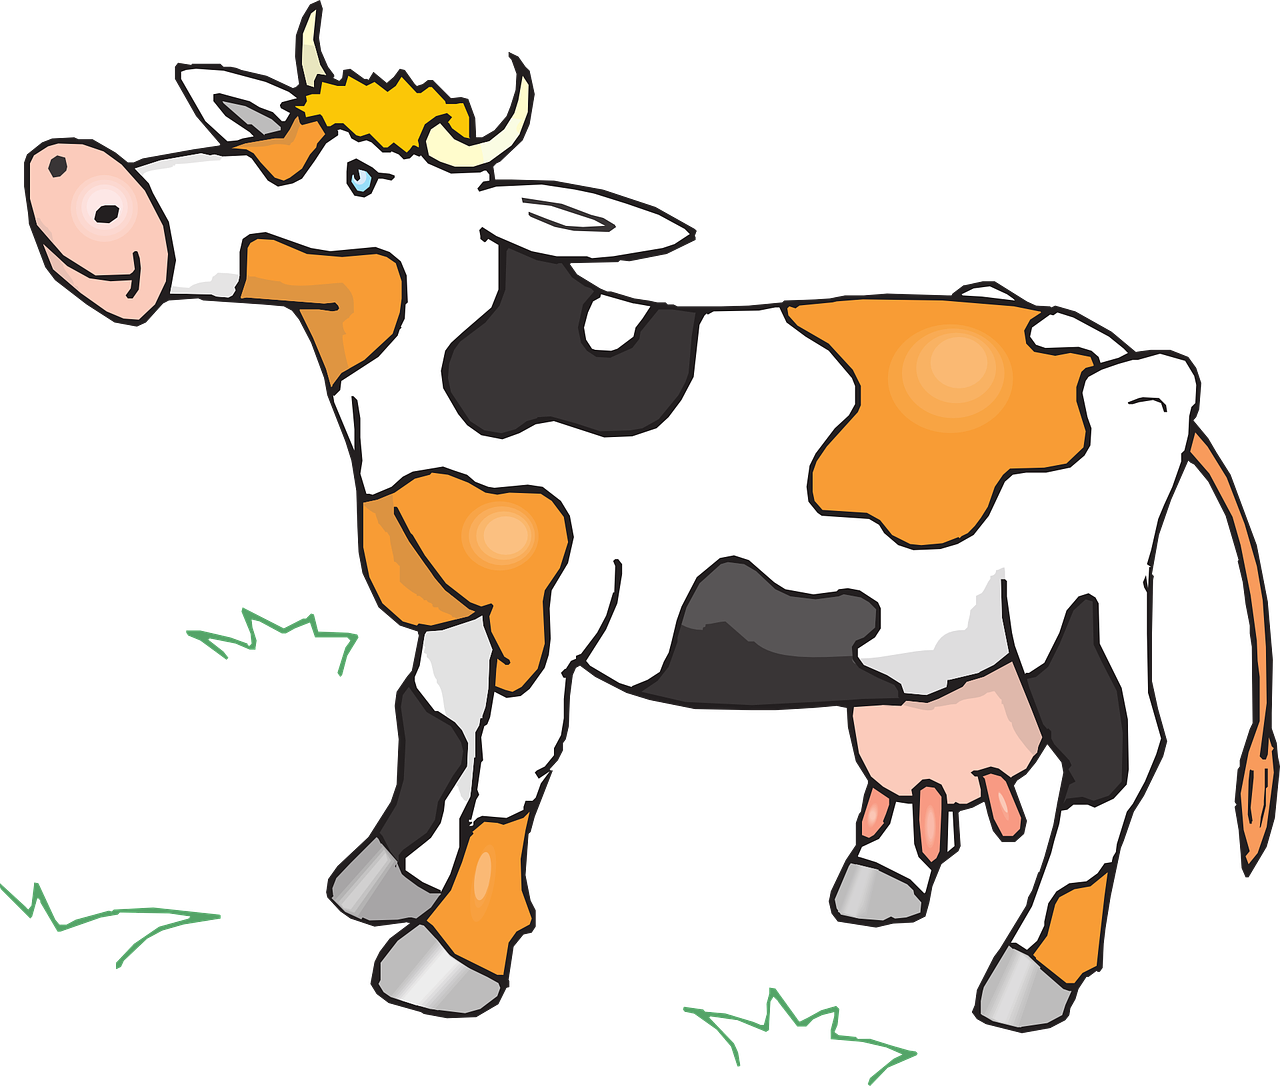 cow,cattle,livestock,farm,animal,beef,dairy,milk,udder,black,white,orange,mammal,herd,free vector graphics,free pictures, free photos, free images, royalty free, free illustrations, public domain